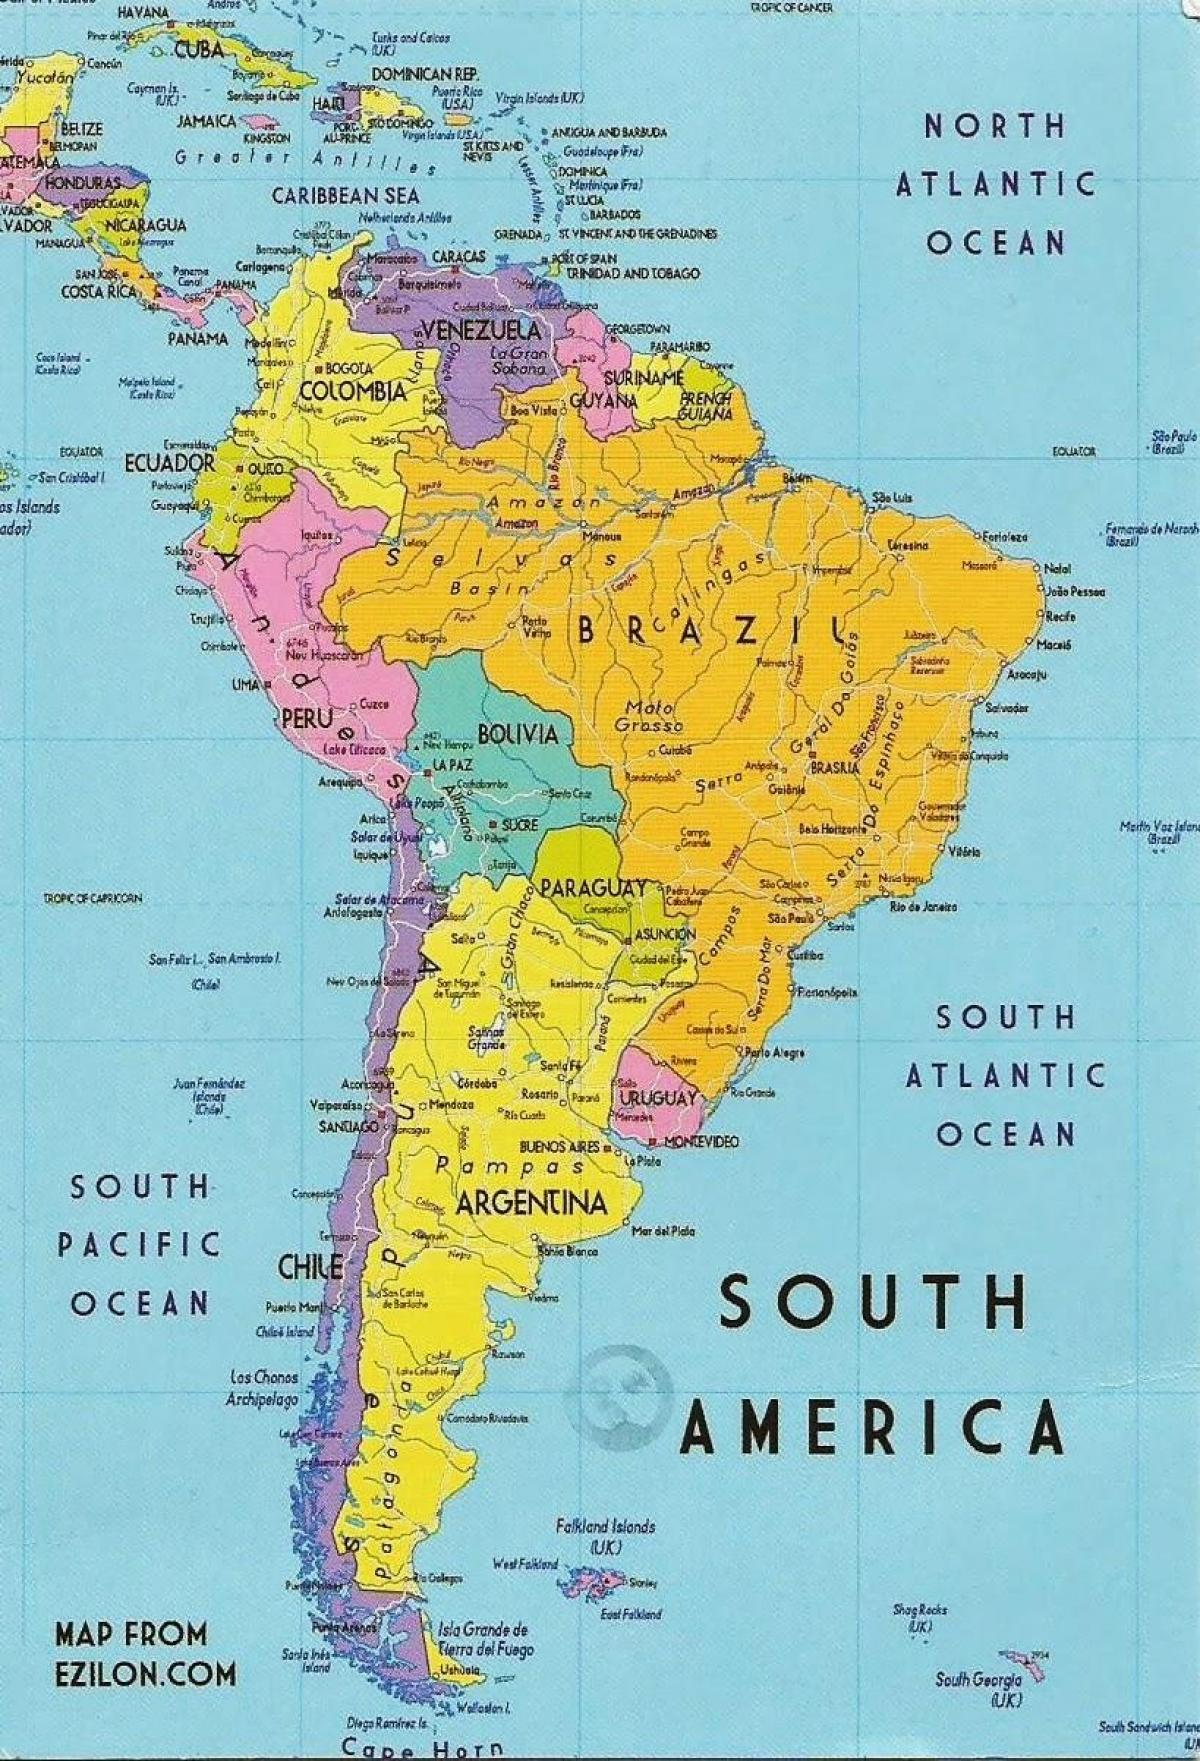 Guyana south america map - Map of Guyana south america ... on u.s. county, america shopping, america outline, america vector, america area, america people, america atlas, america attractions, incorporated territory, america art, america globe, united states territory, america national anthem, america logo, america acronym, america weather, america city, america continent, america activities, contiguous united states, indian reservation, america google earth, america text, america water bottle, america hemisphere,